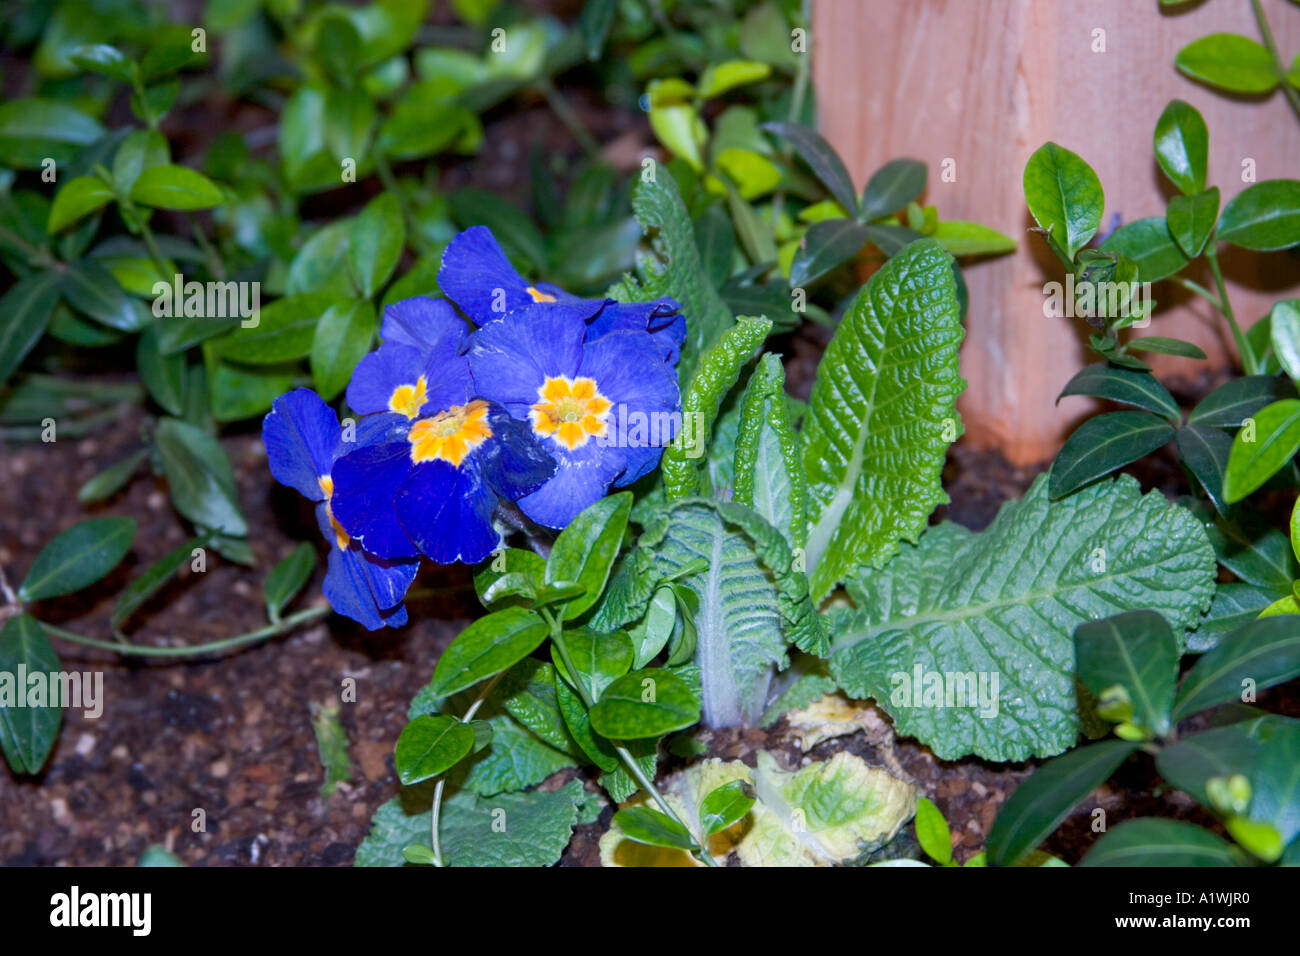 Blue Flowers With Blue Petals And Yellow And White Centers Stock